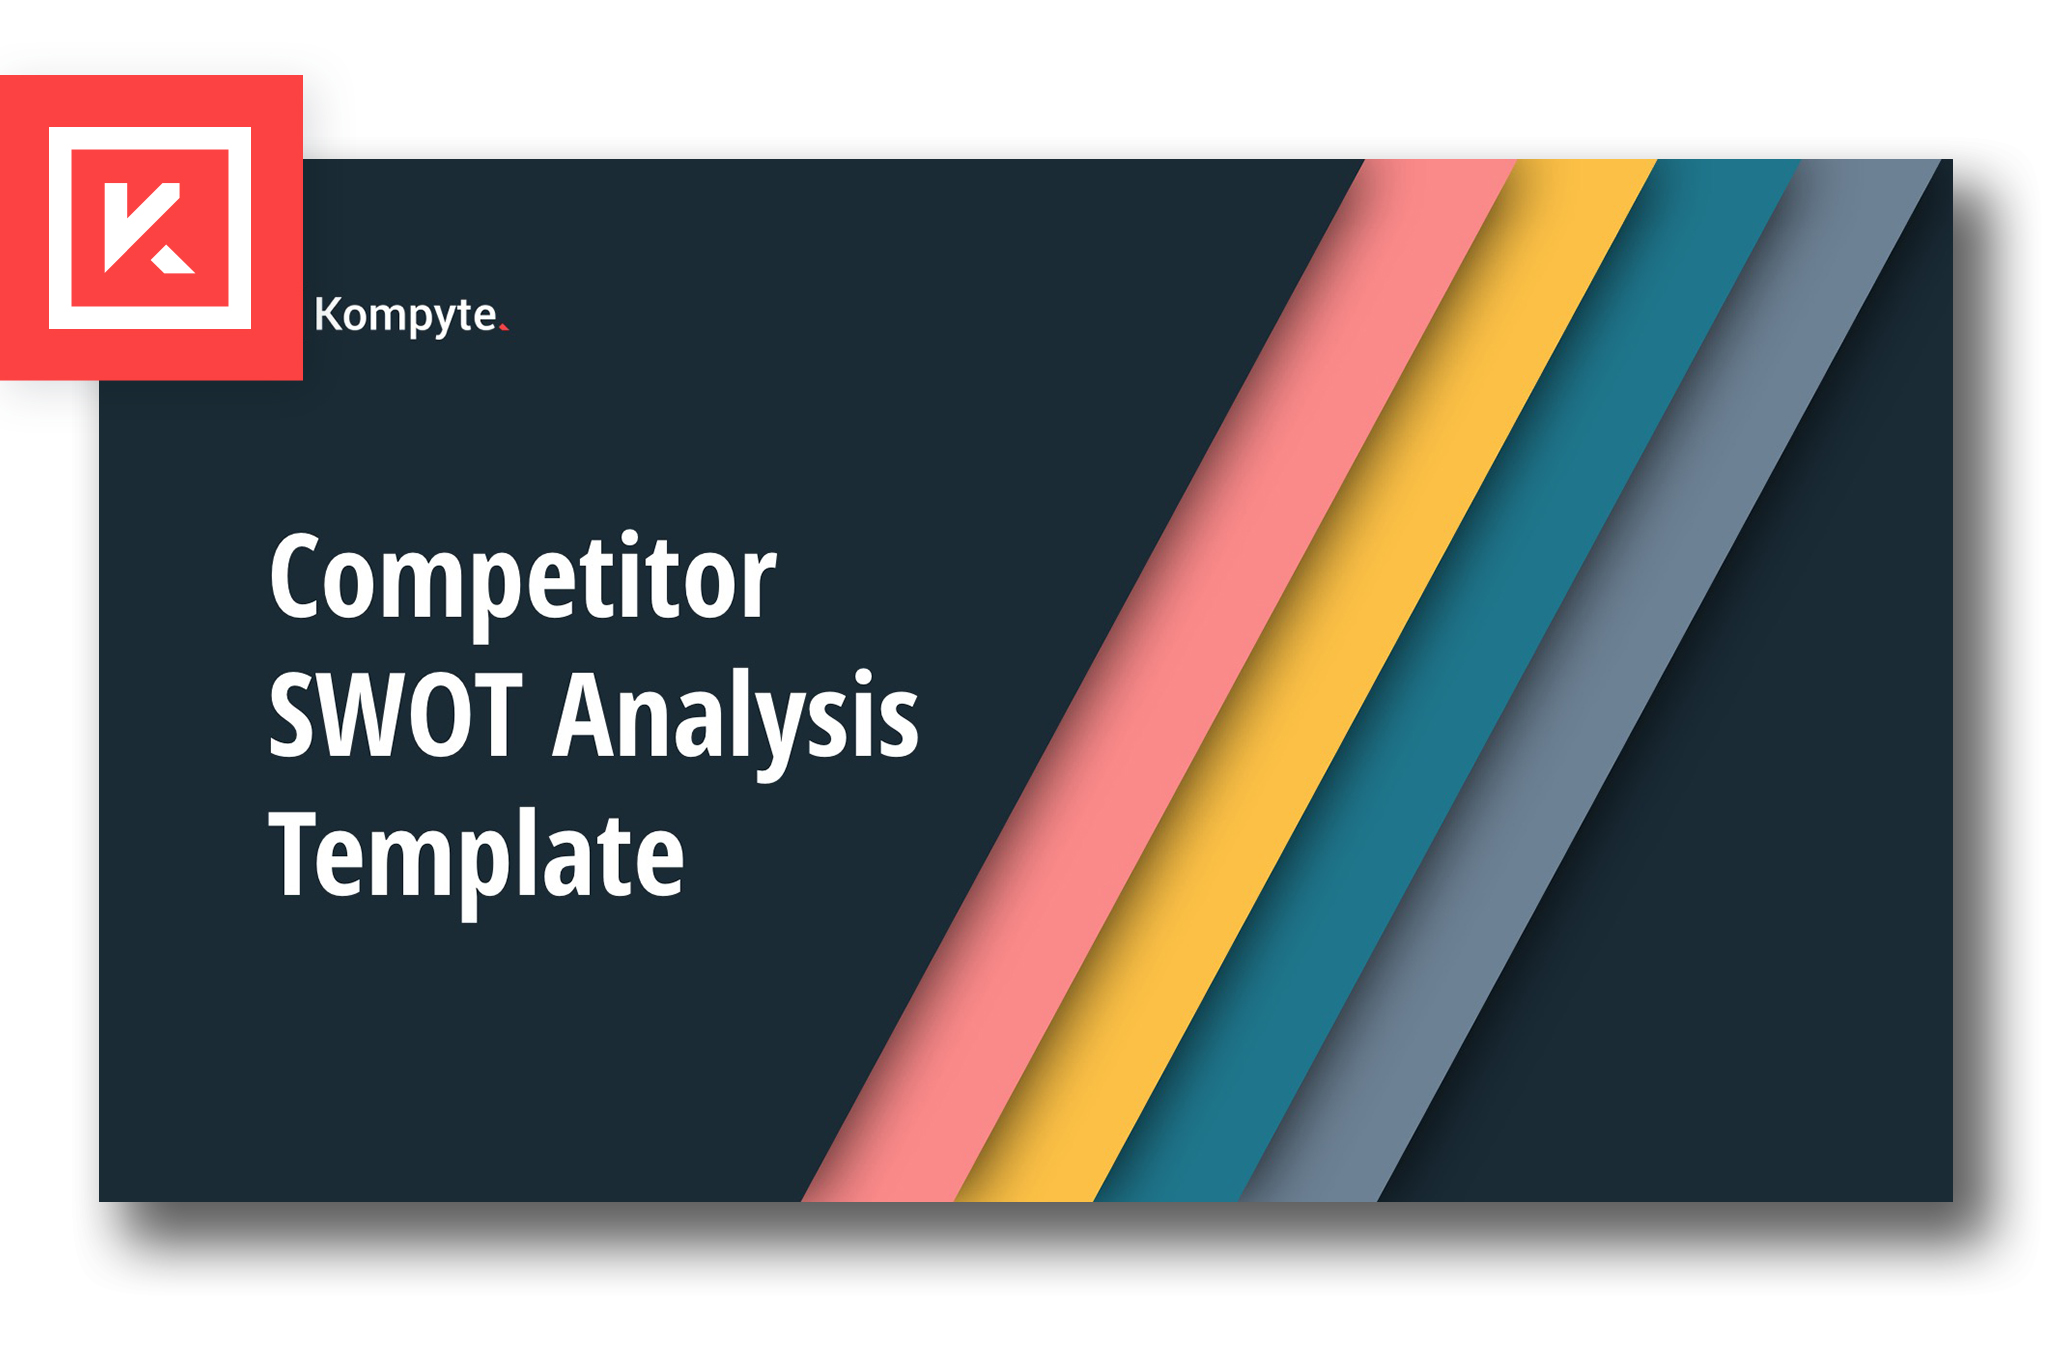 Competitor SWOT Analysis Solutions | Kompyte